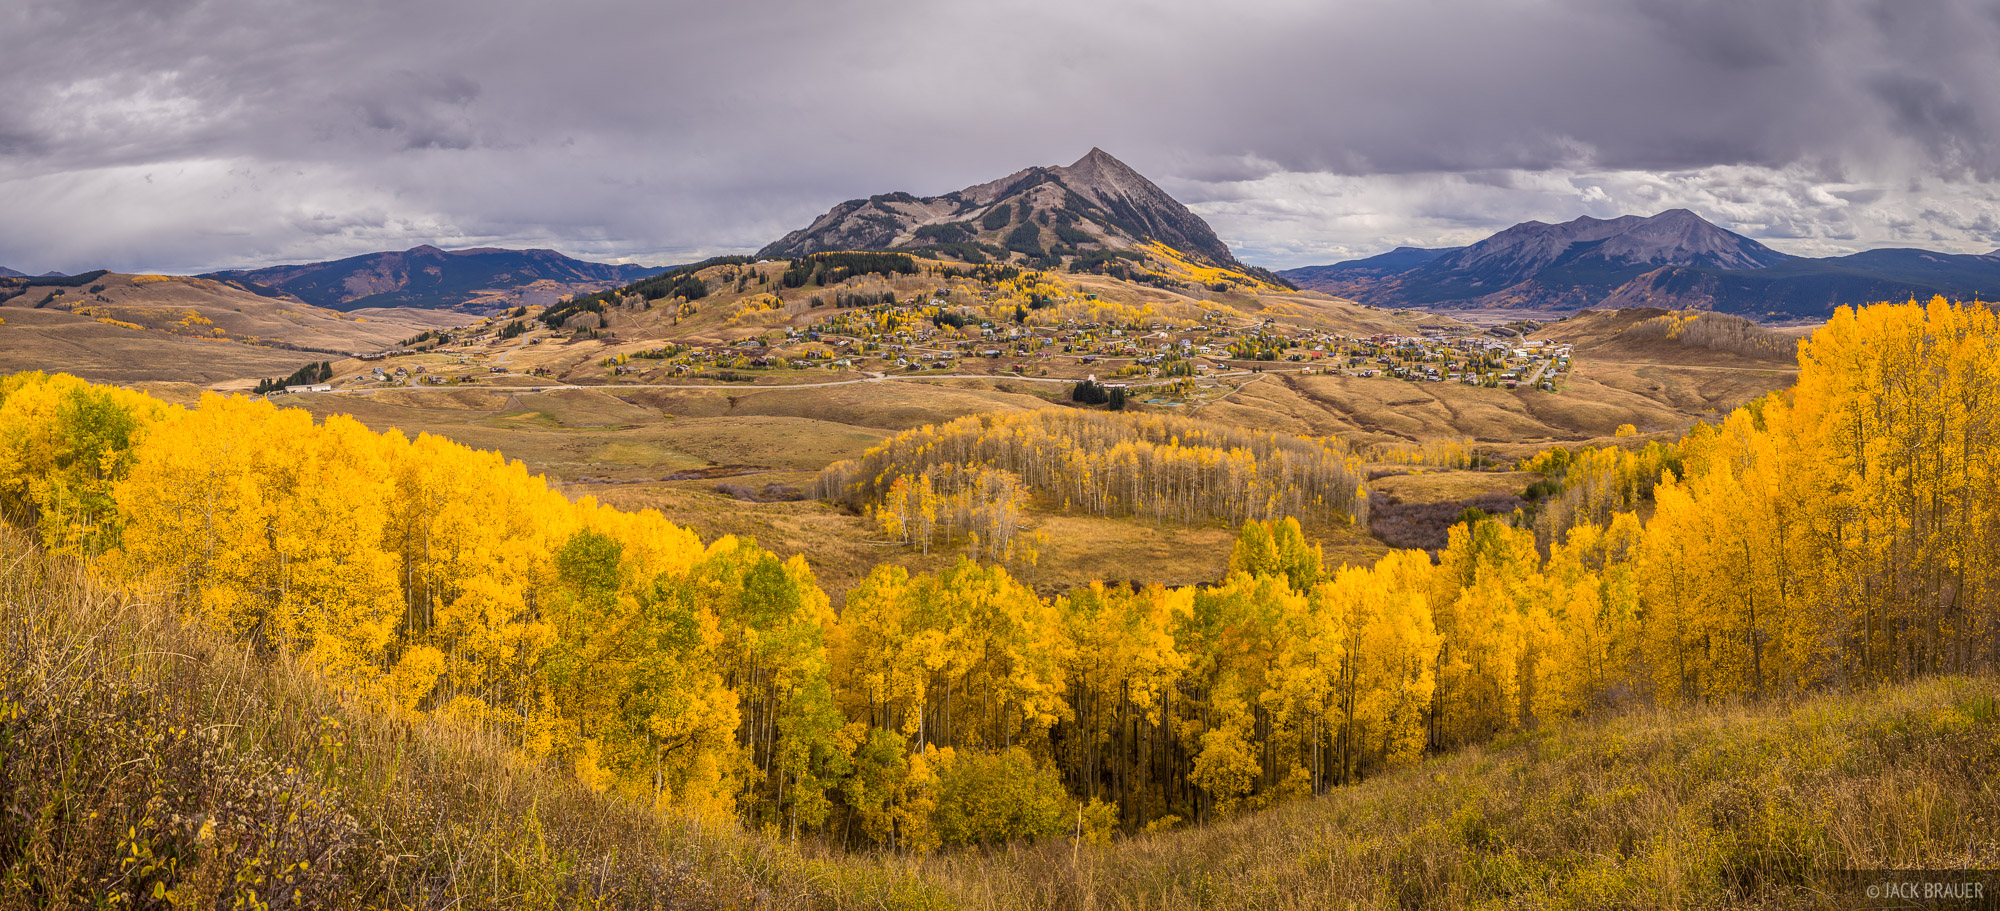 Colorado,Crested Butte,aspens, autumn, September, panorama, photo